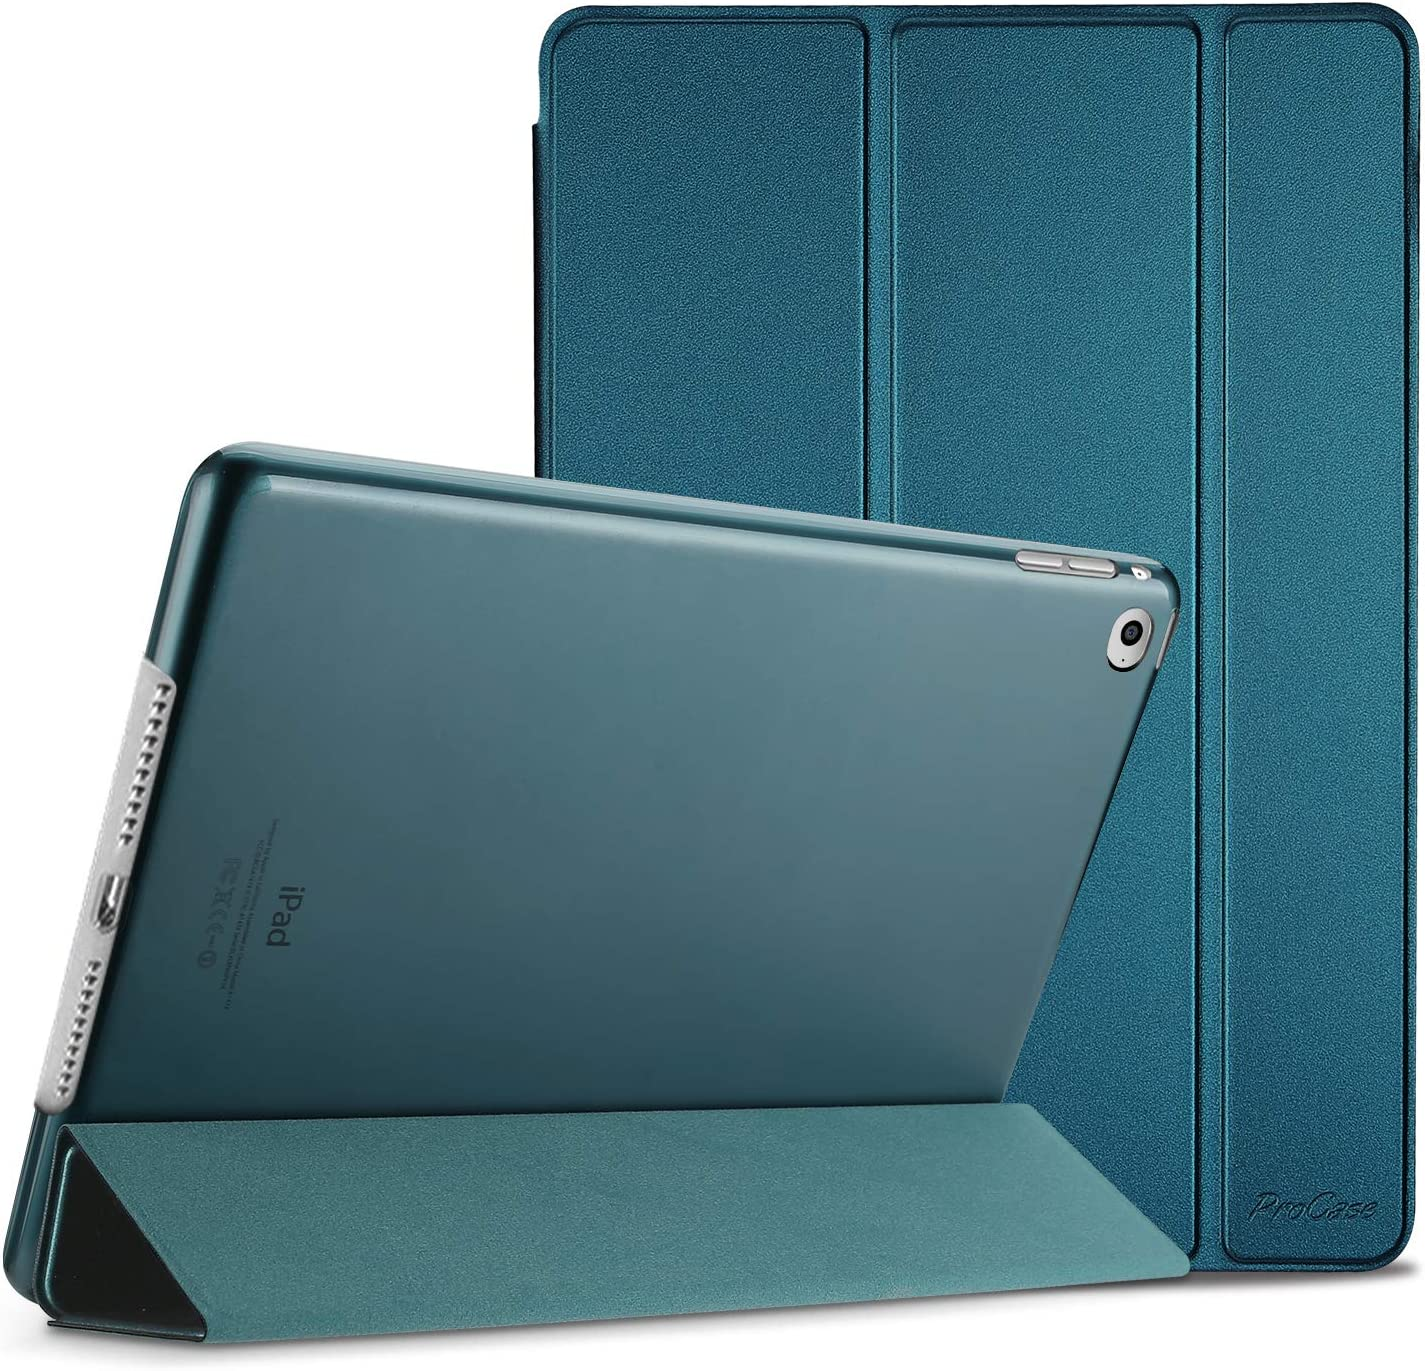 ProCase Smart Case for iPad Air 2 (2014 Release), Ultra Slim Lightweight Stand Protective Case Shell with Translucent Frosted Back Cover for Apple iPad Air 2 (A1566 A1567) -Teal